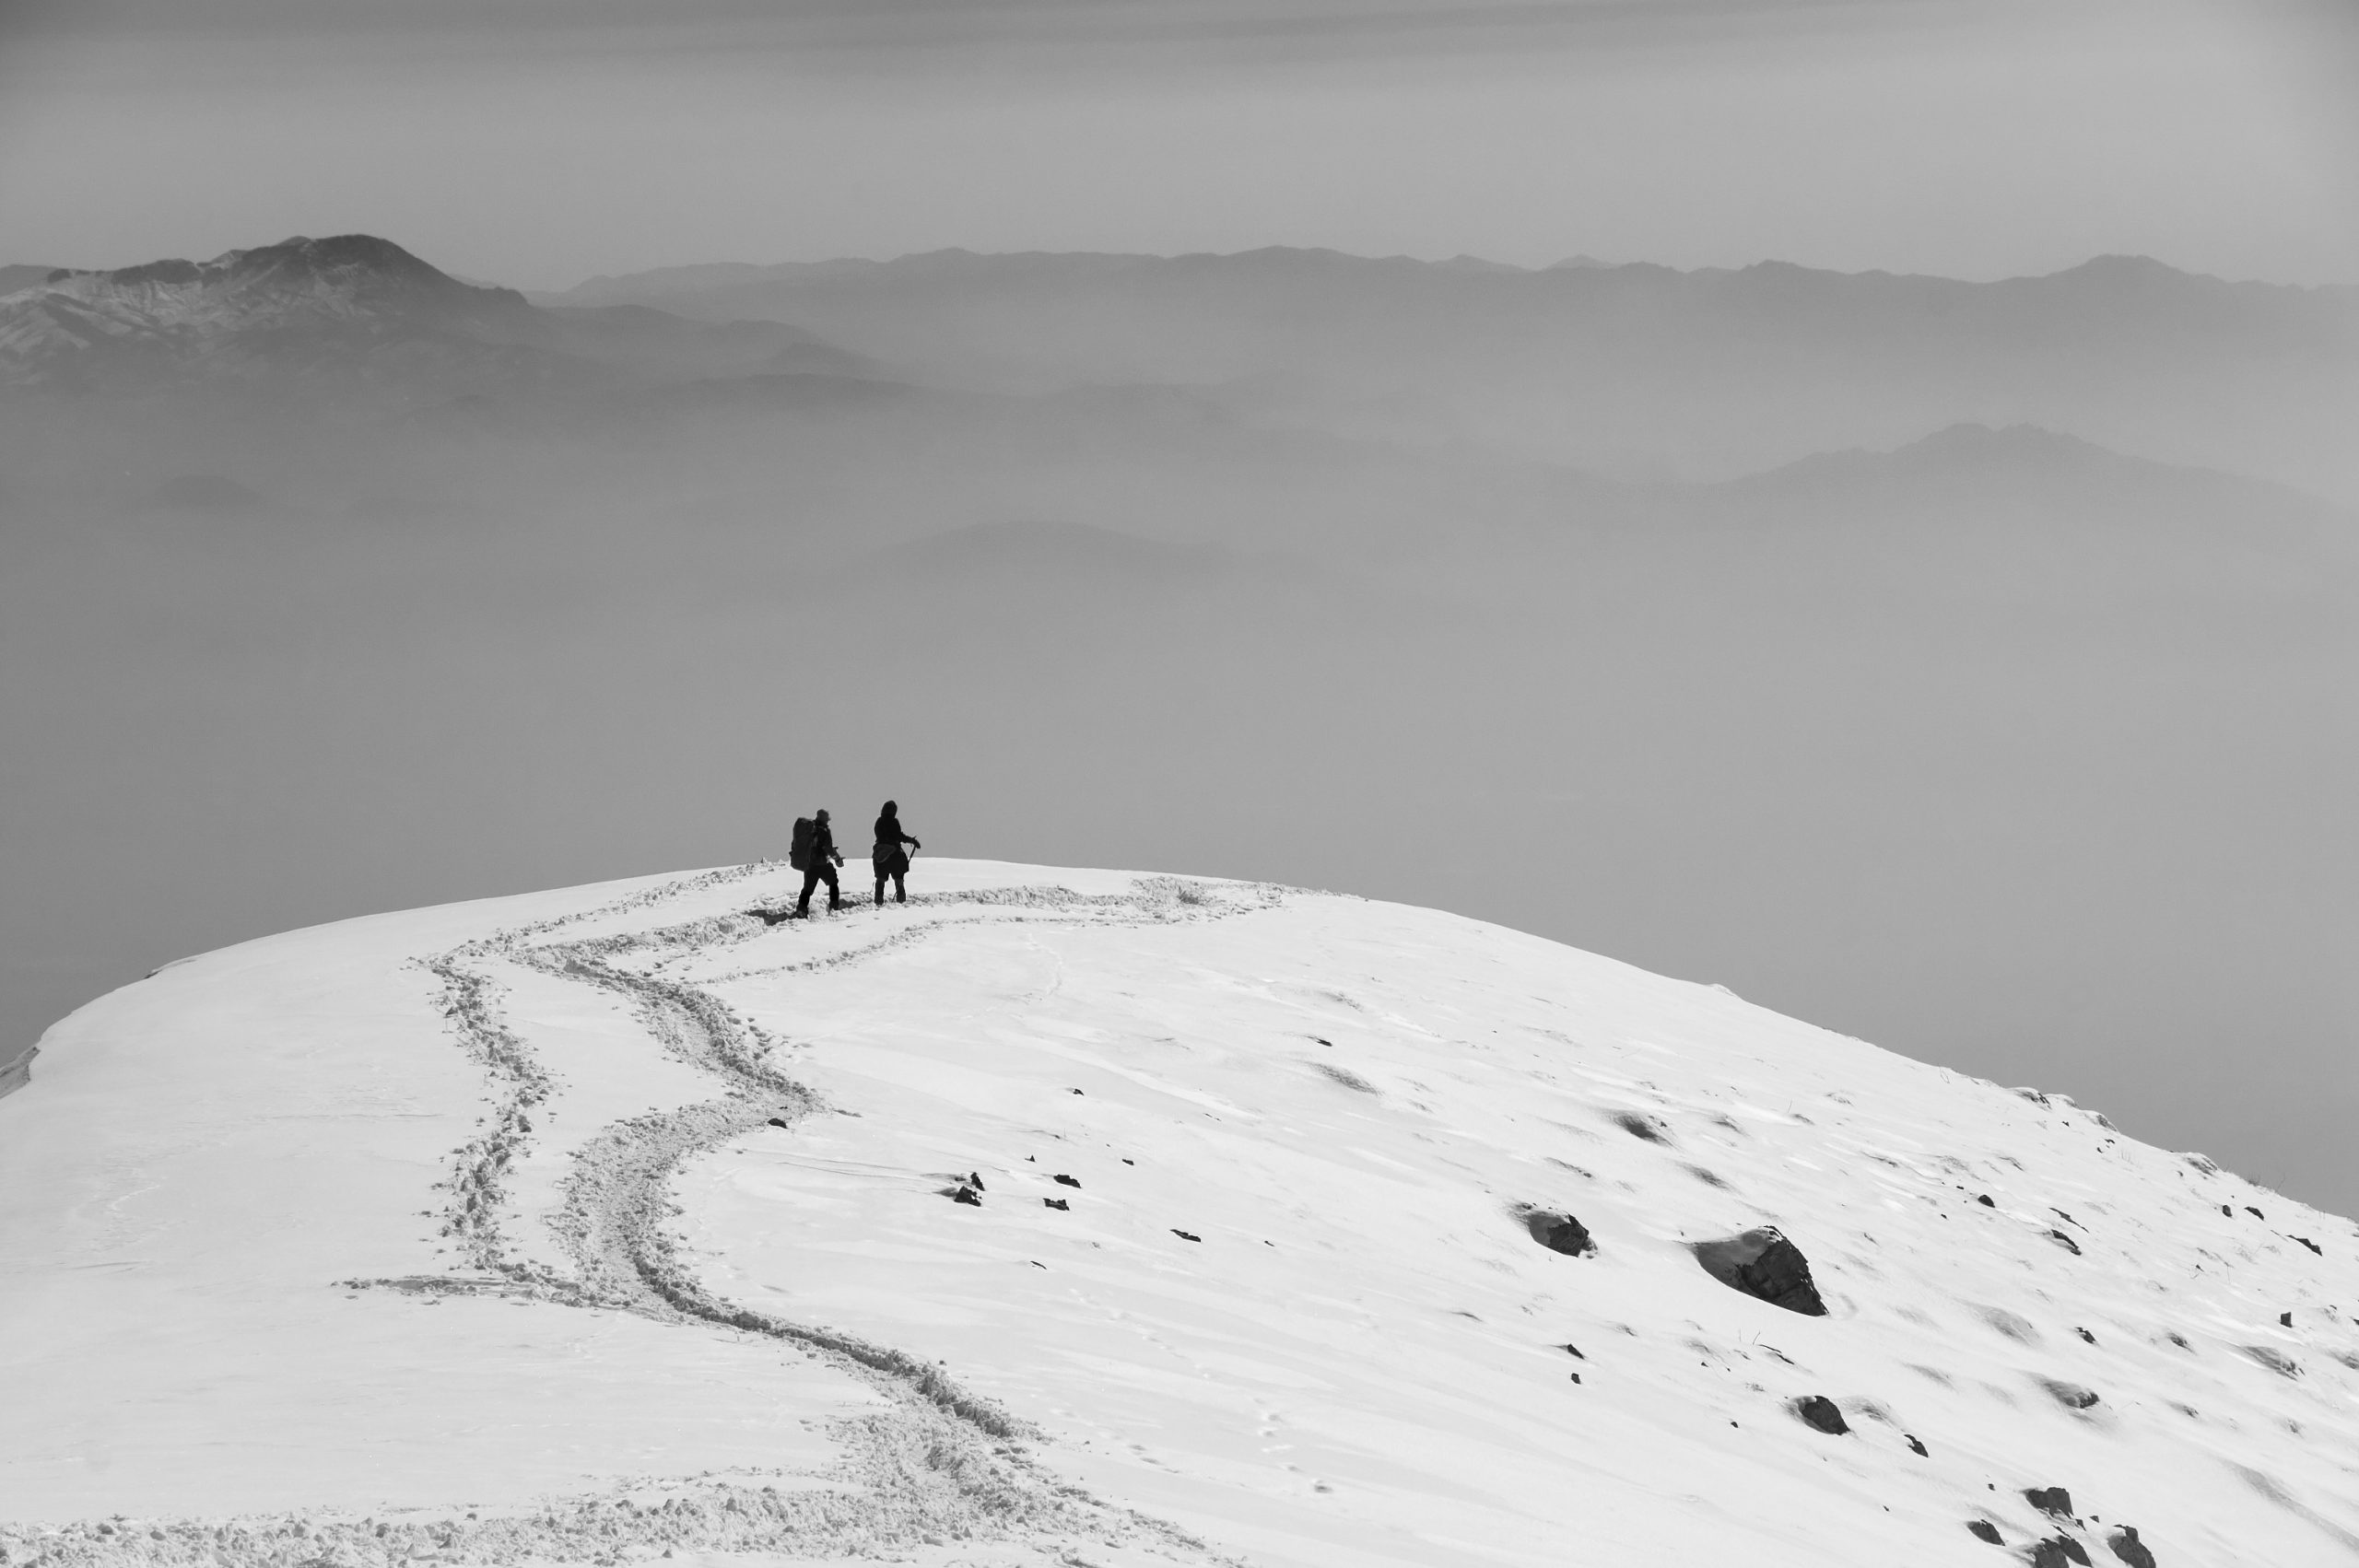 Black and White photo by Payam Hamzei of two women climbing Darabad Mountain, north of Tehran, Iran